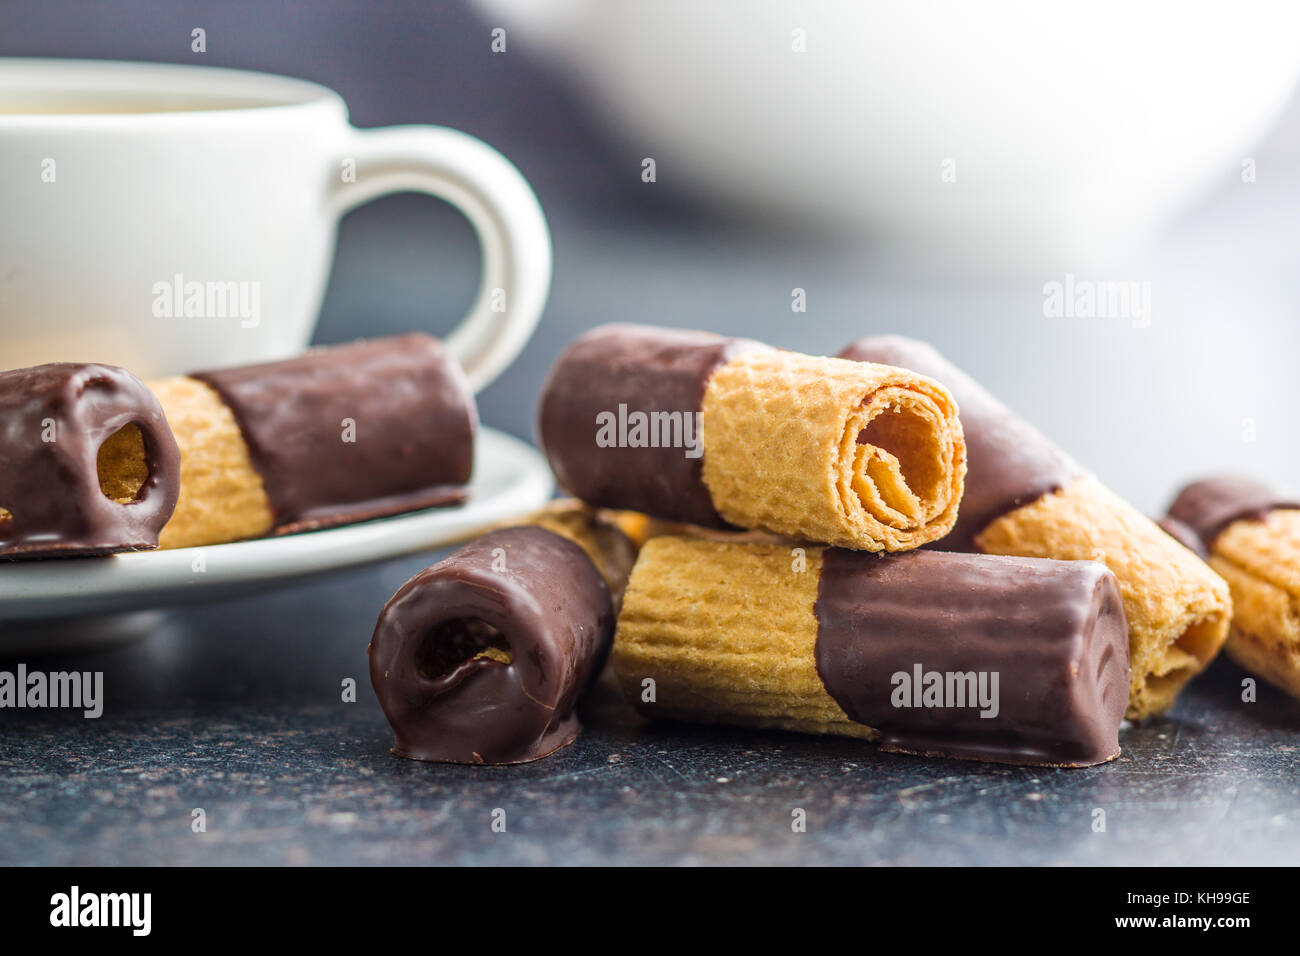 Sweet dessert. Biscuits rolls with chocolate icing on old kitchen table. - Stock Image